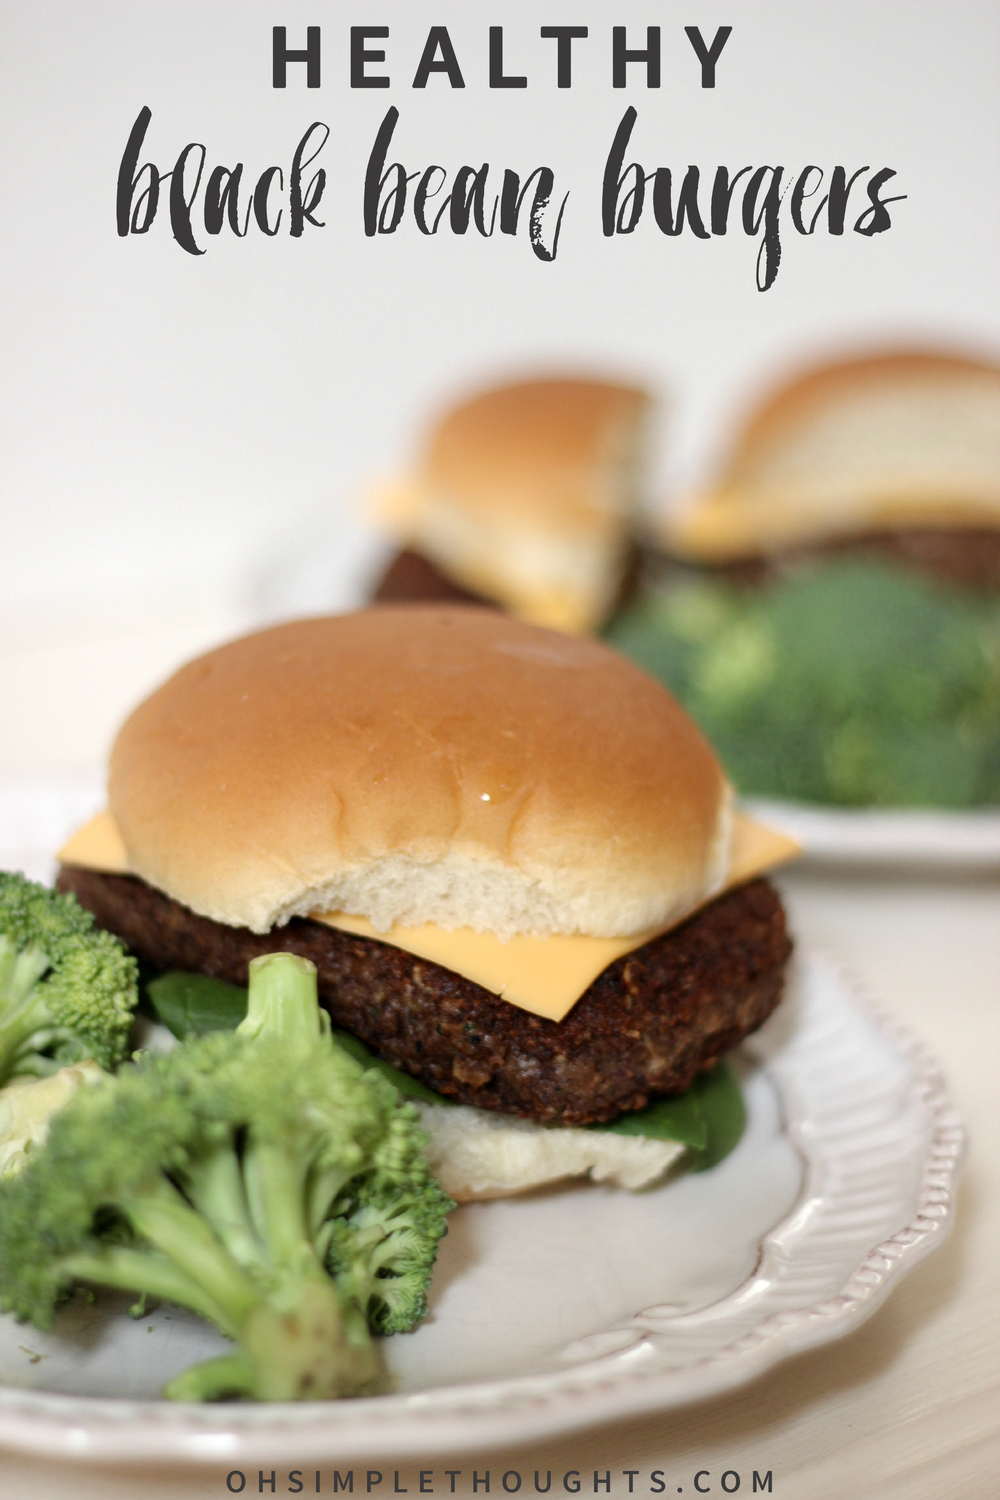 Healthy tex mex inspired black bean burgers! Simple, delicious and HEALTHY! Huge money saver as well! I have to try these!!